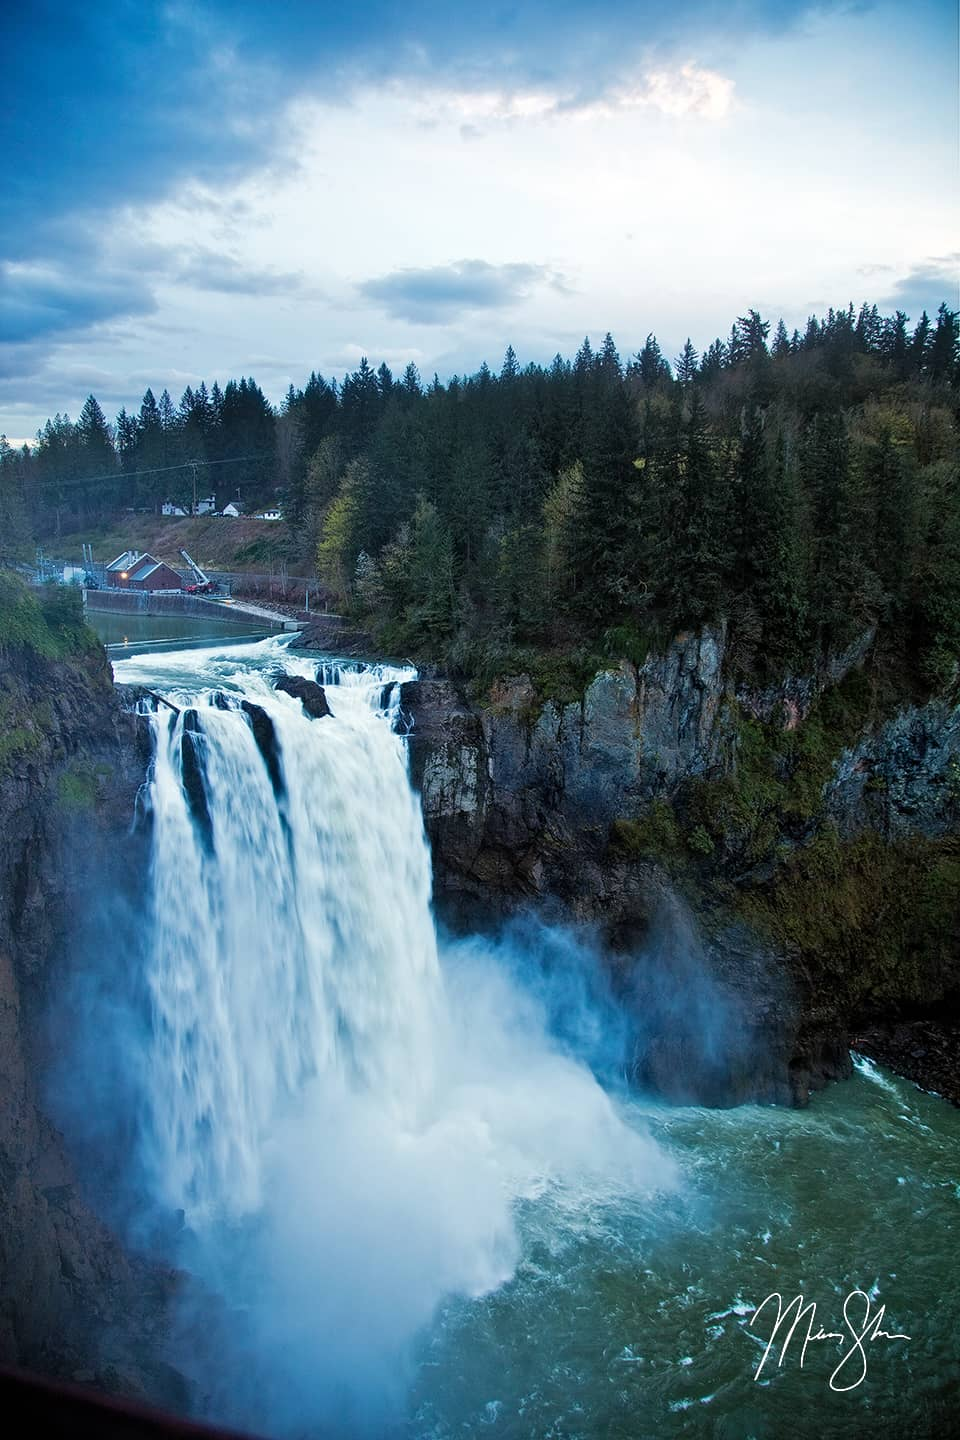 Open edition fine art print of Snoqualmie Falls from Mickey Shannon Photography. Location: Snoqualmie Falls, Washington